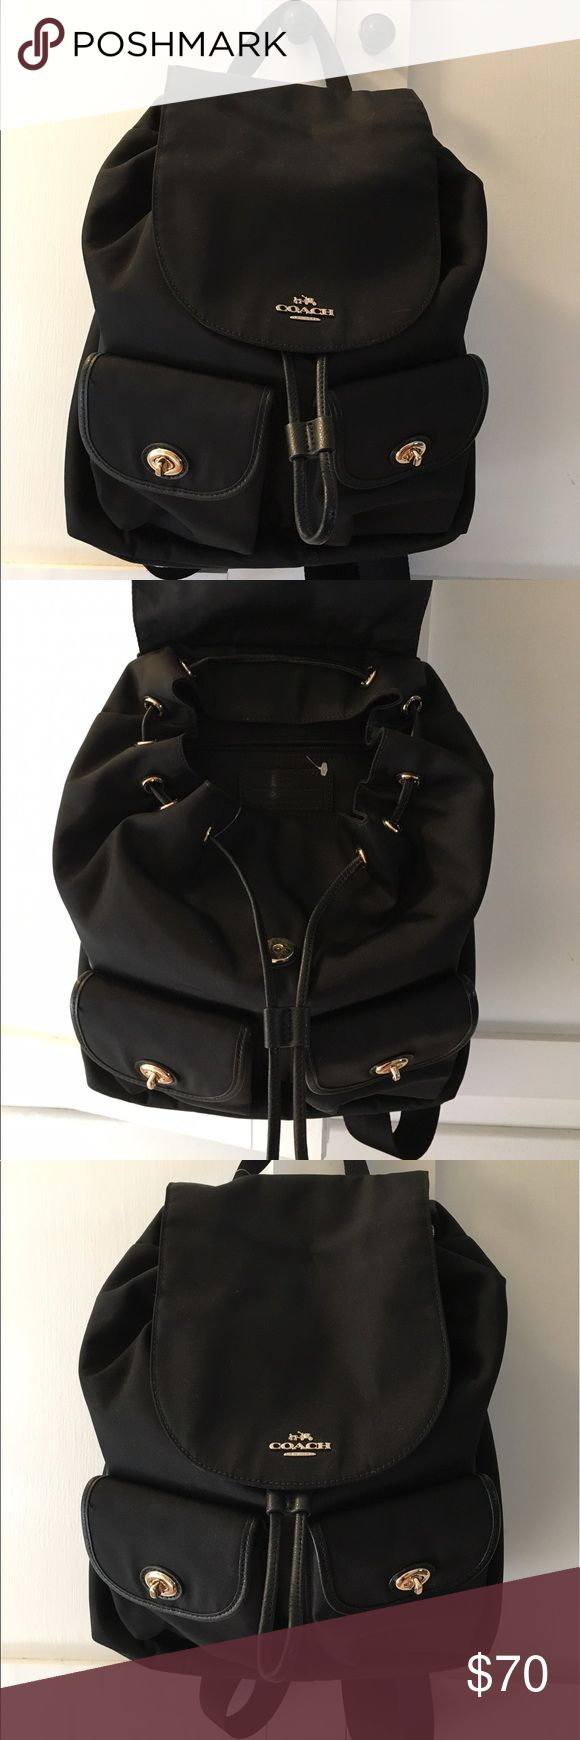 Black Coach Backpack Never been used black canvas Coach backpack. Easy to clean, could be used for a diaper bag or everyday bag! Cute and classy! Coach Bags Backpacks